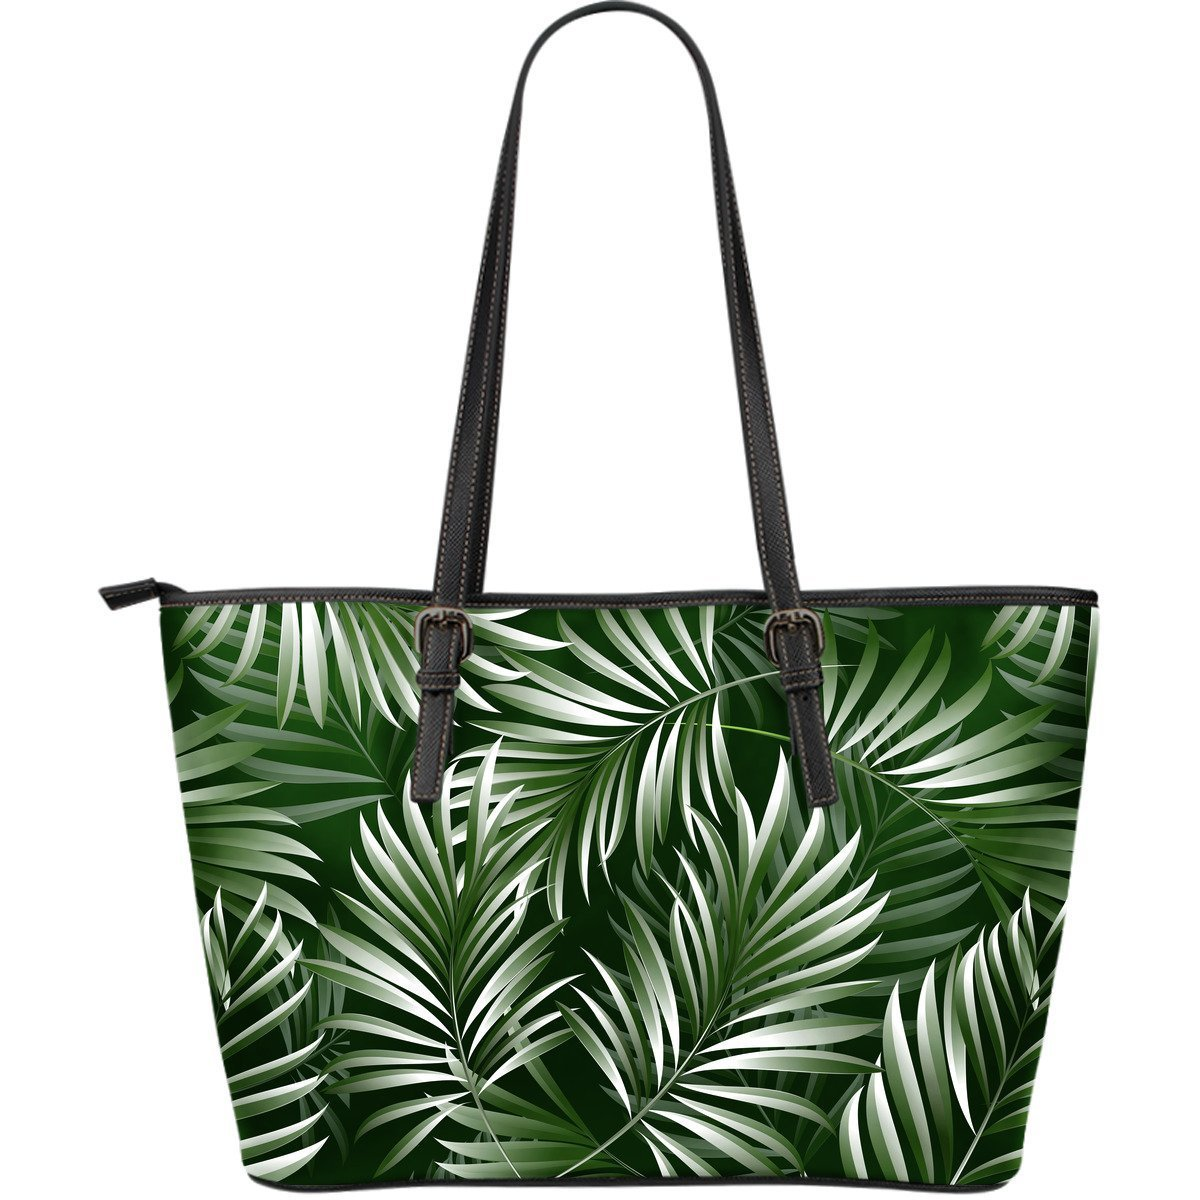 White Green Tropical Palm Leaves Large Leather Tote Bag